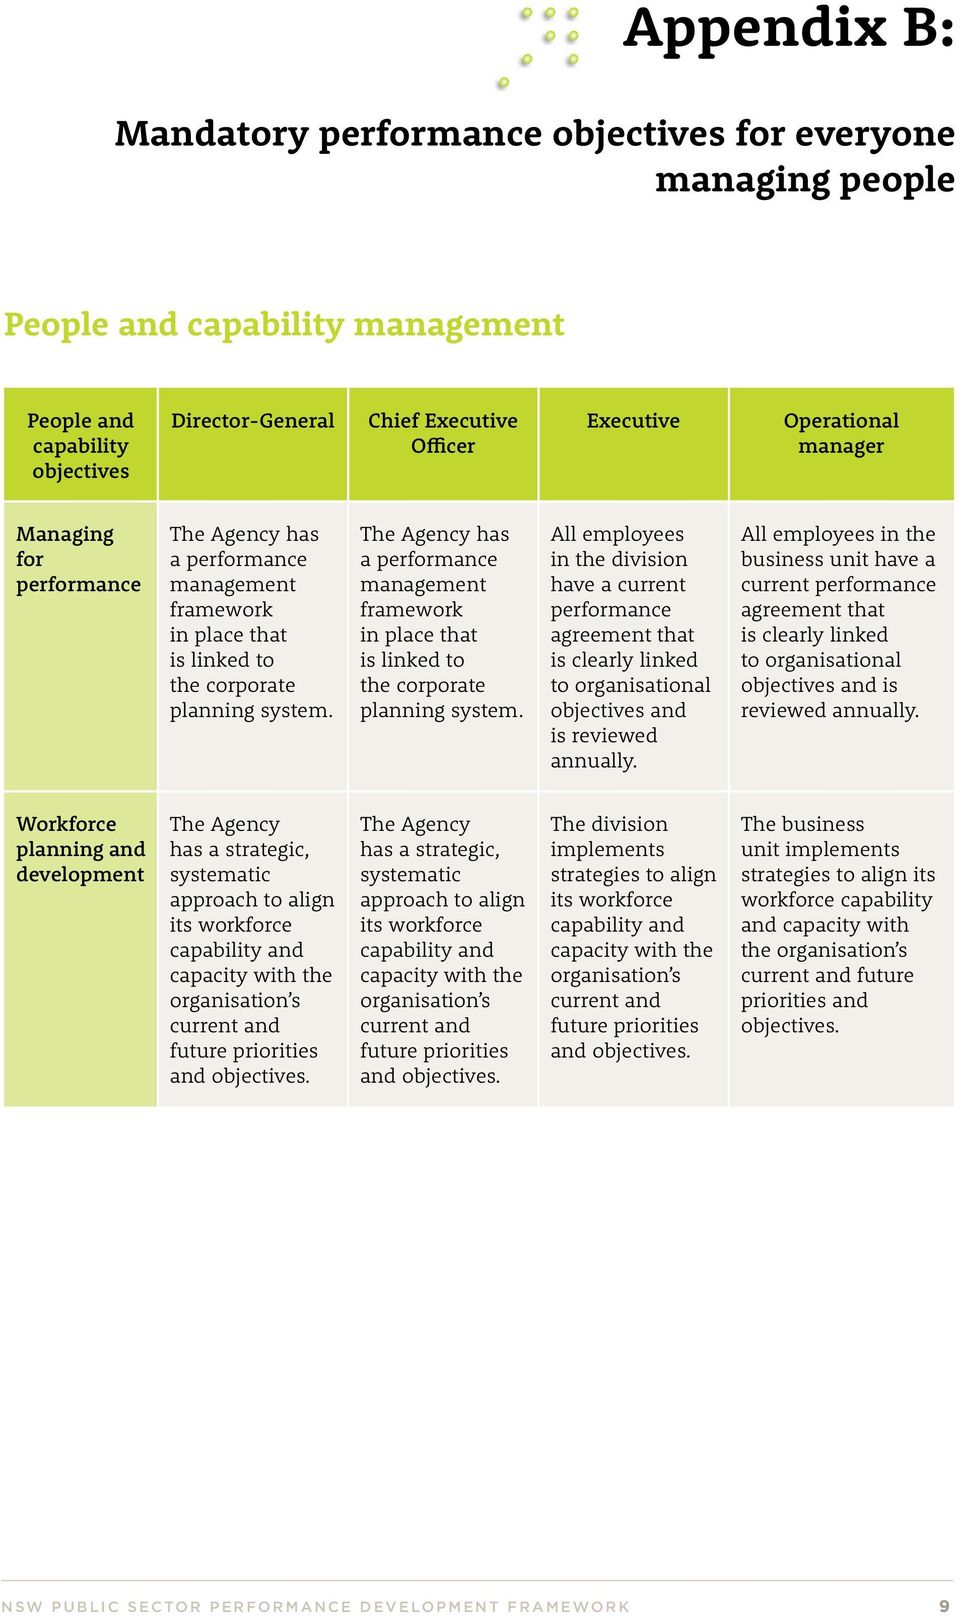 a performance management framework in place that is linked to the corporate planning system.